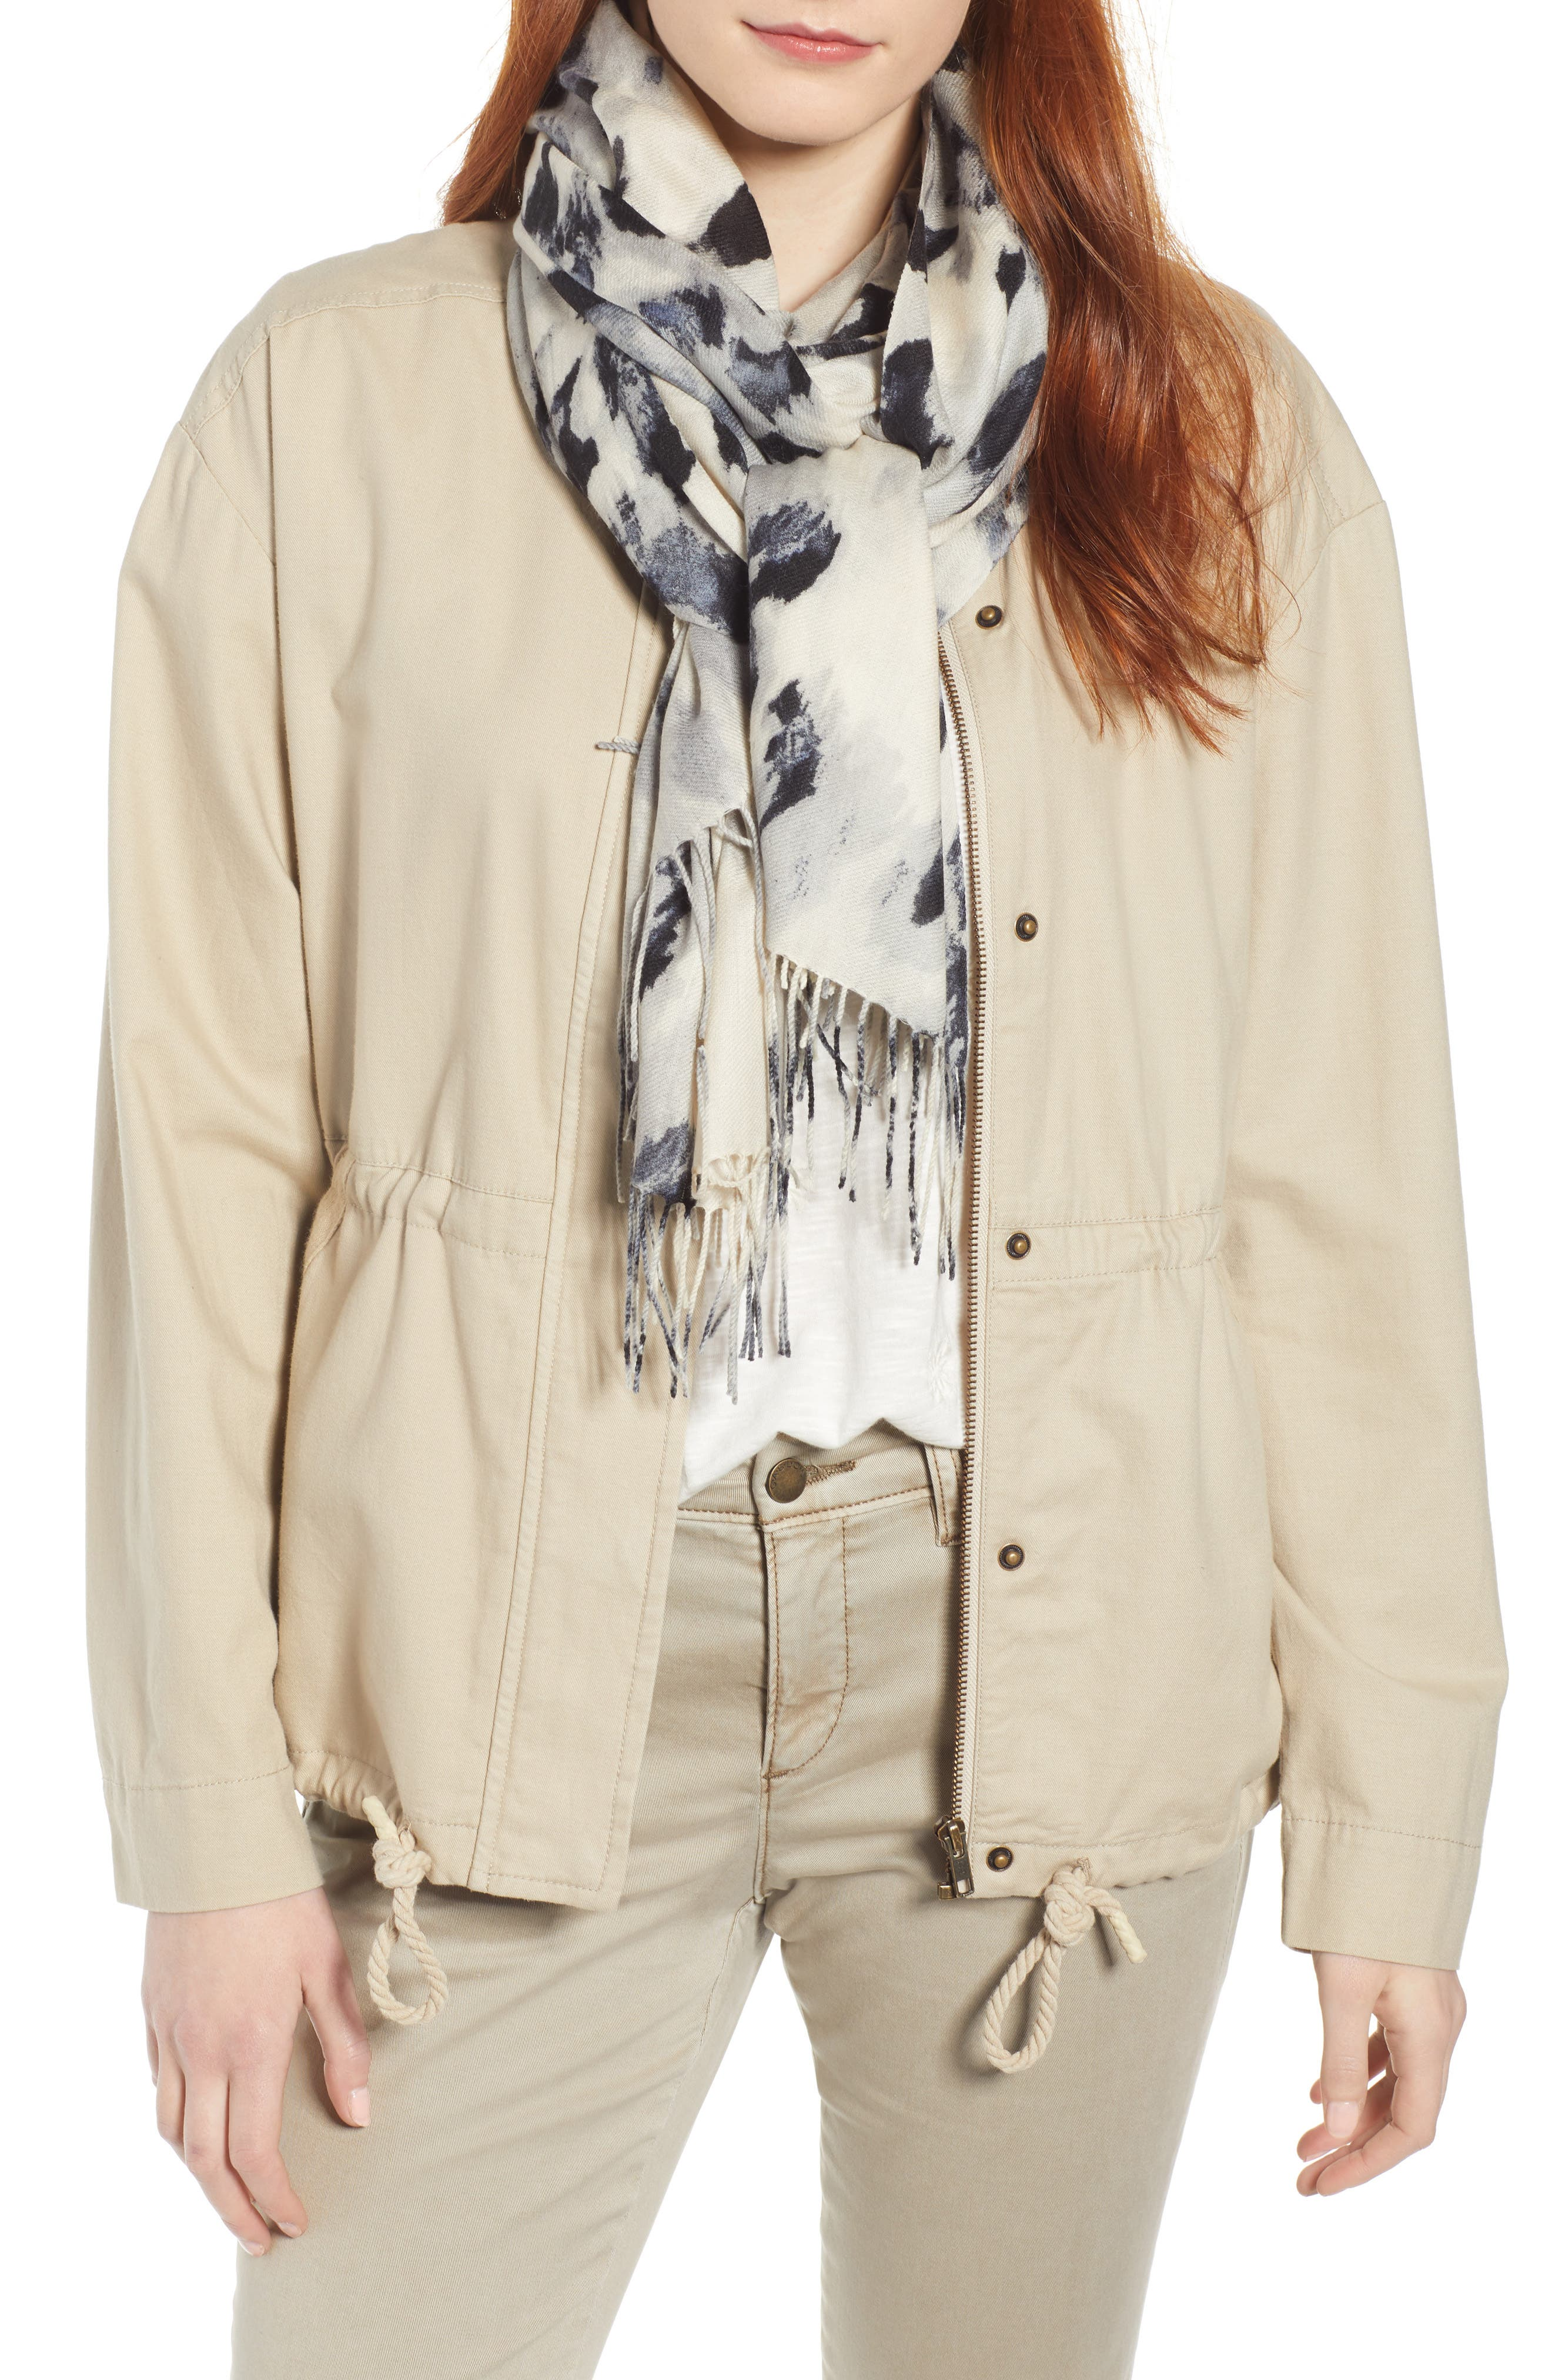 NORDSTROM, Tissue Print Wool & Cashmere Wrap Scarf, Main thumbnail 1, color, GREY FEATHERED CAT